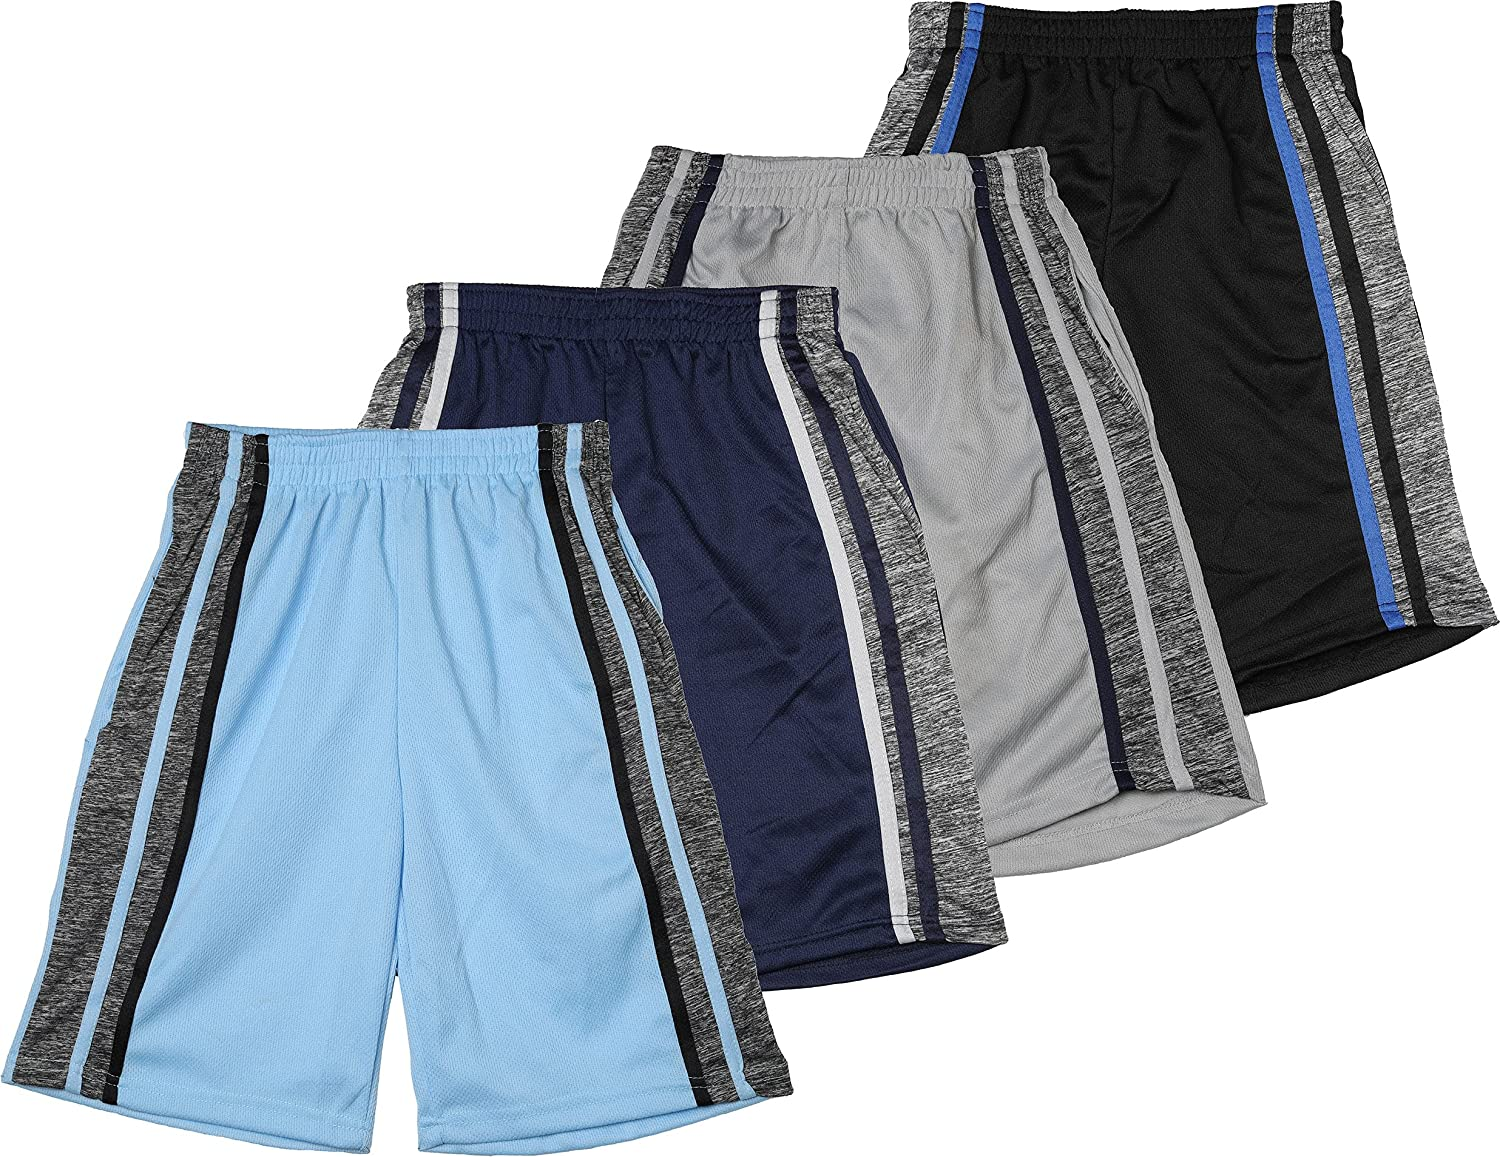 Active Club Gorgeous Boys' 4-Pack Performance High order Athletic Basket Mesh